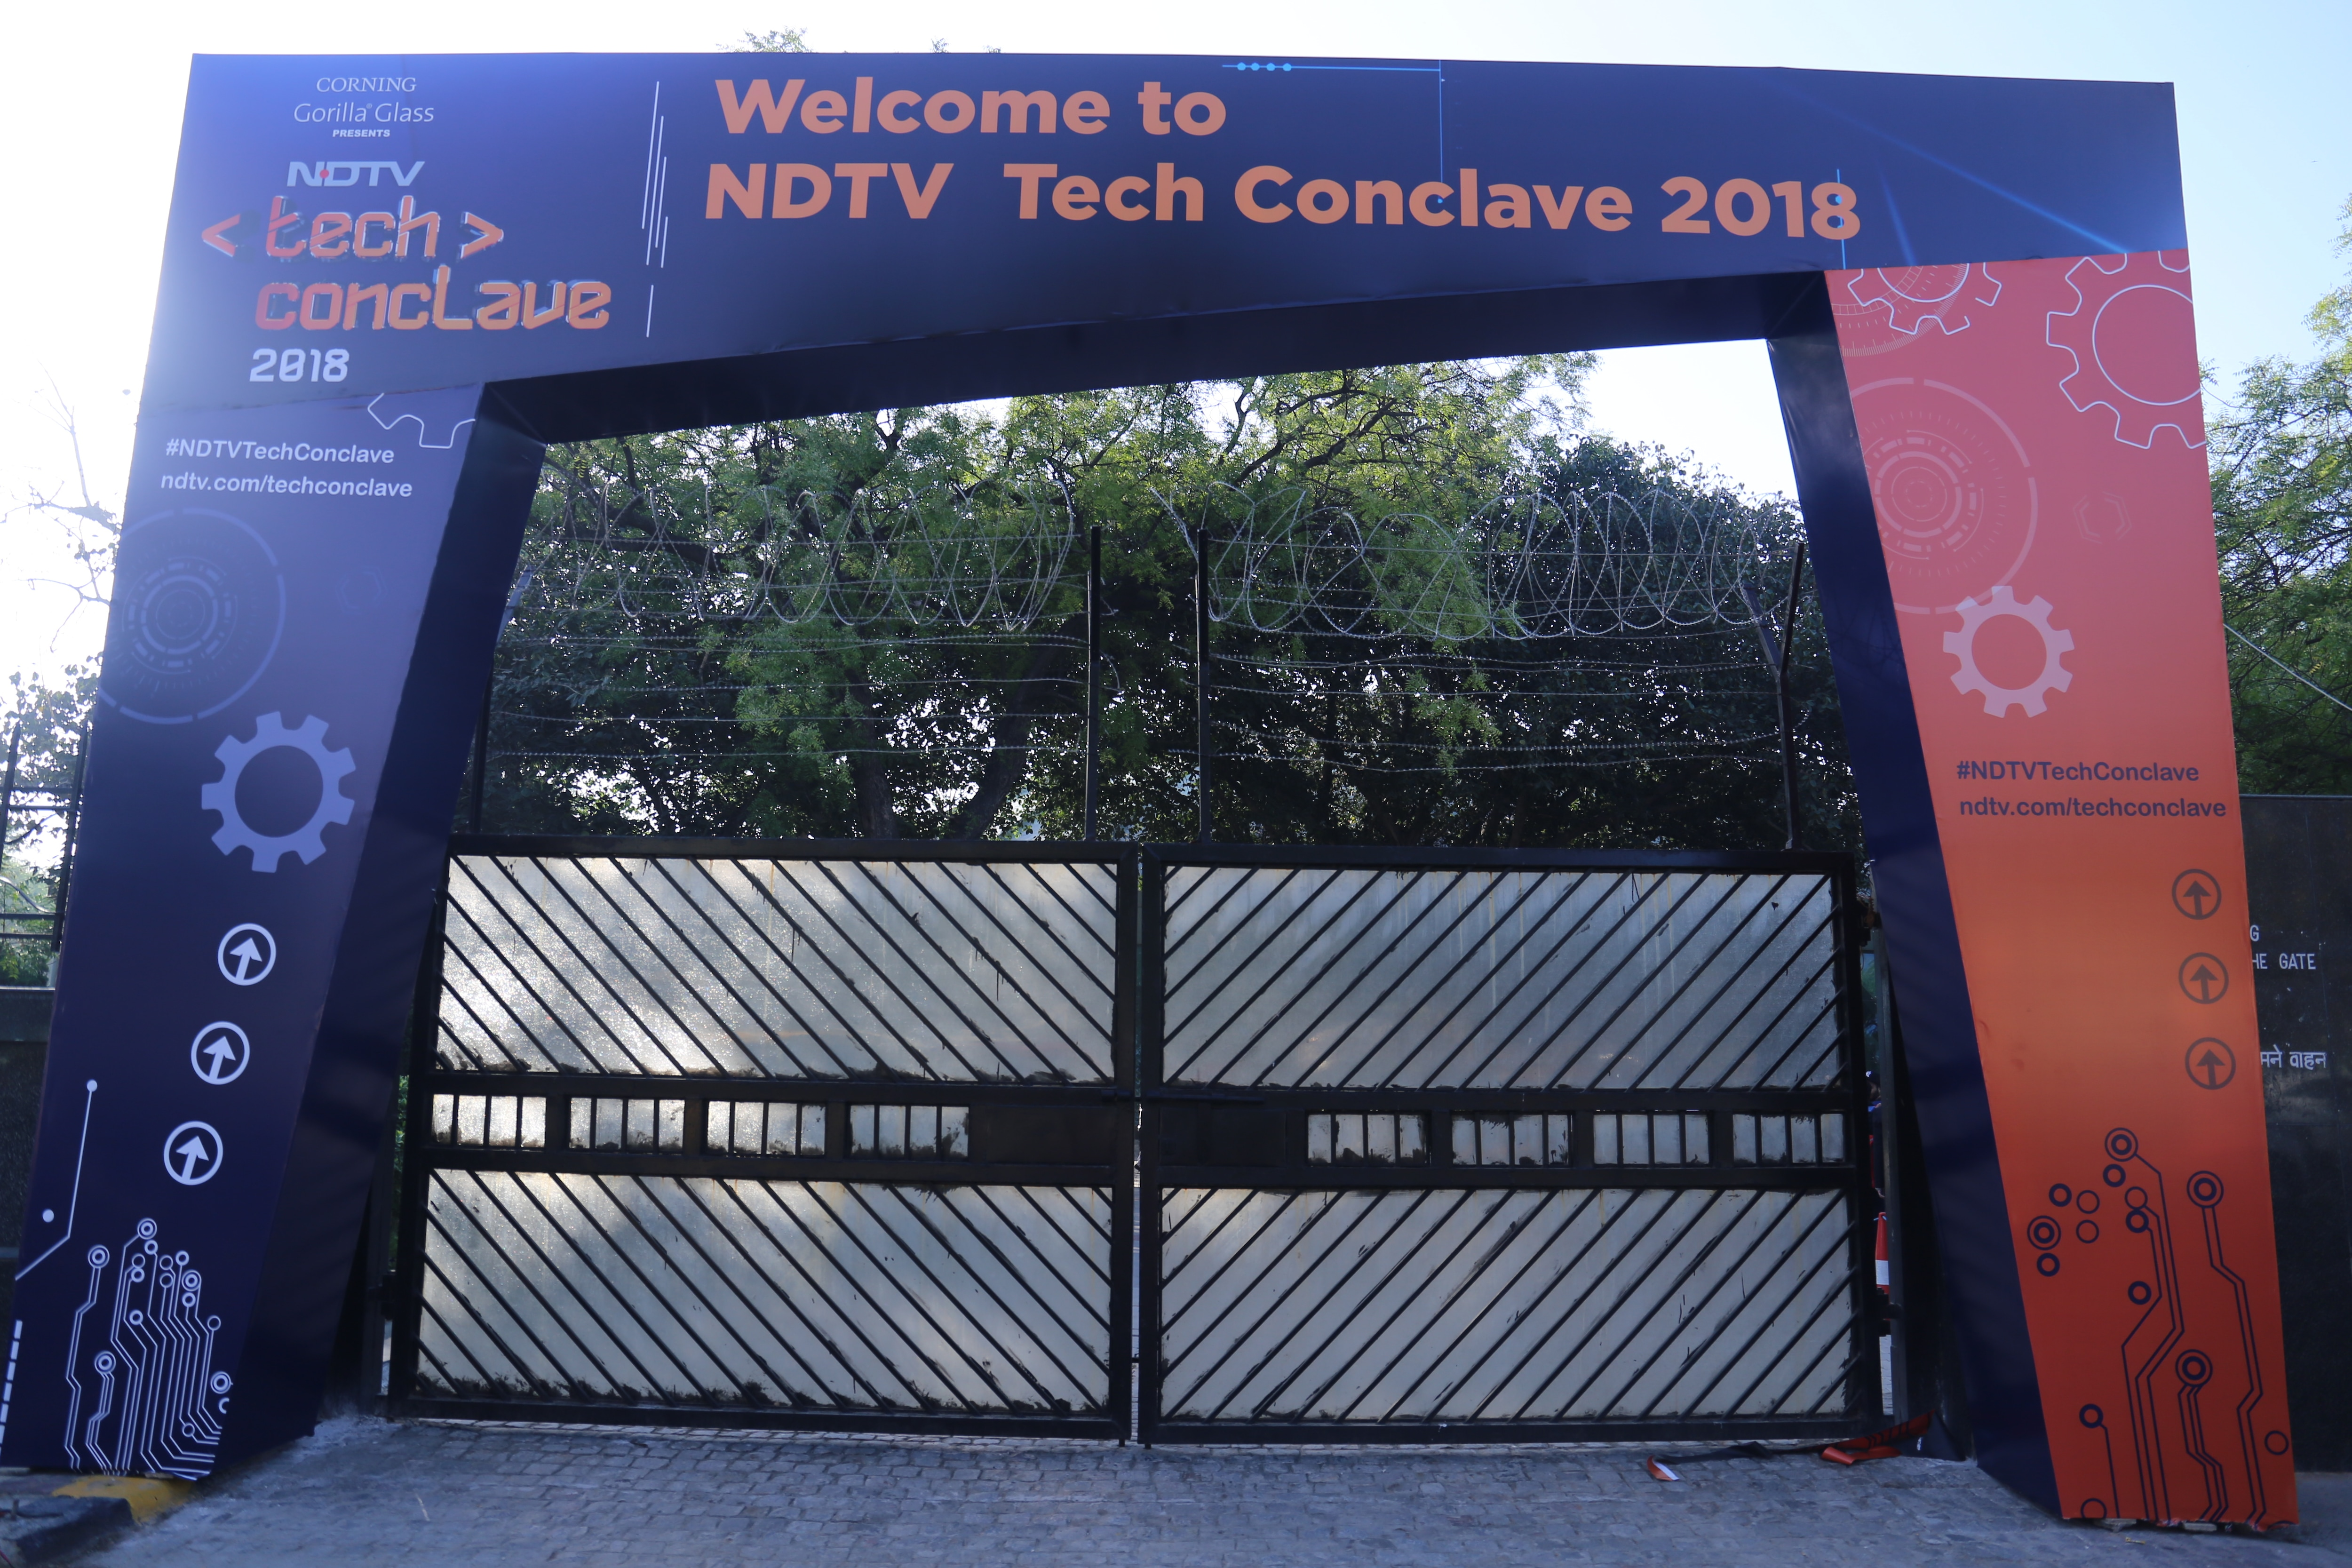 Stage Is Set For NDTV Tech Conclave 2018